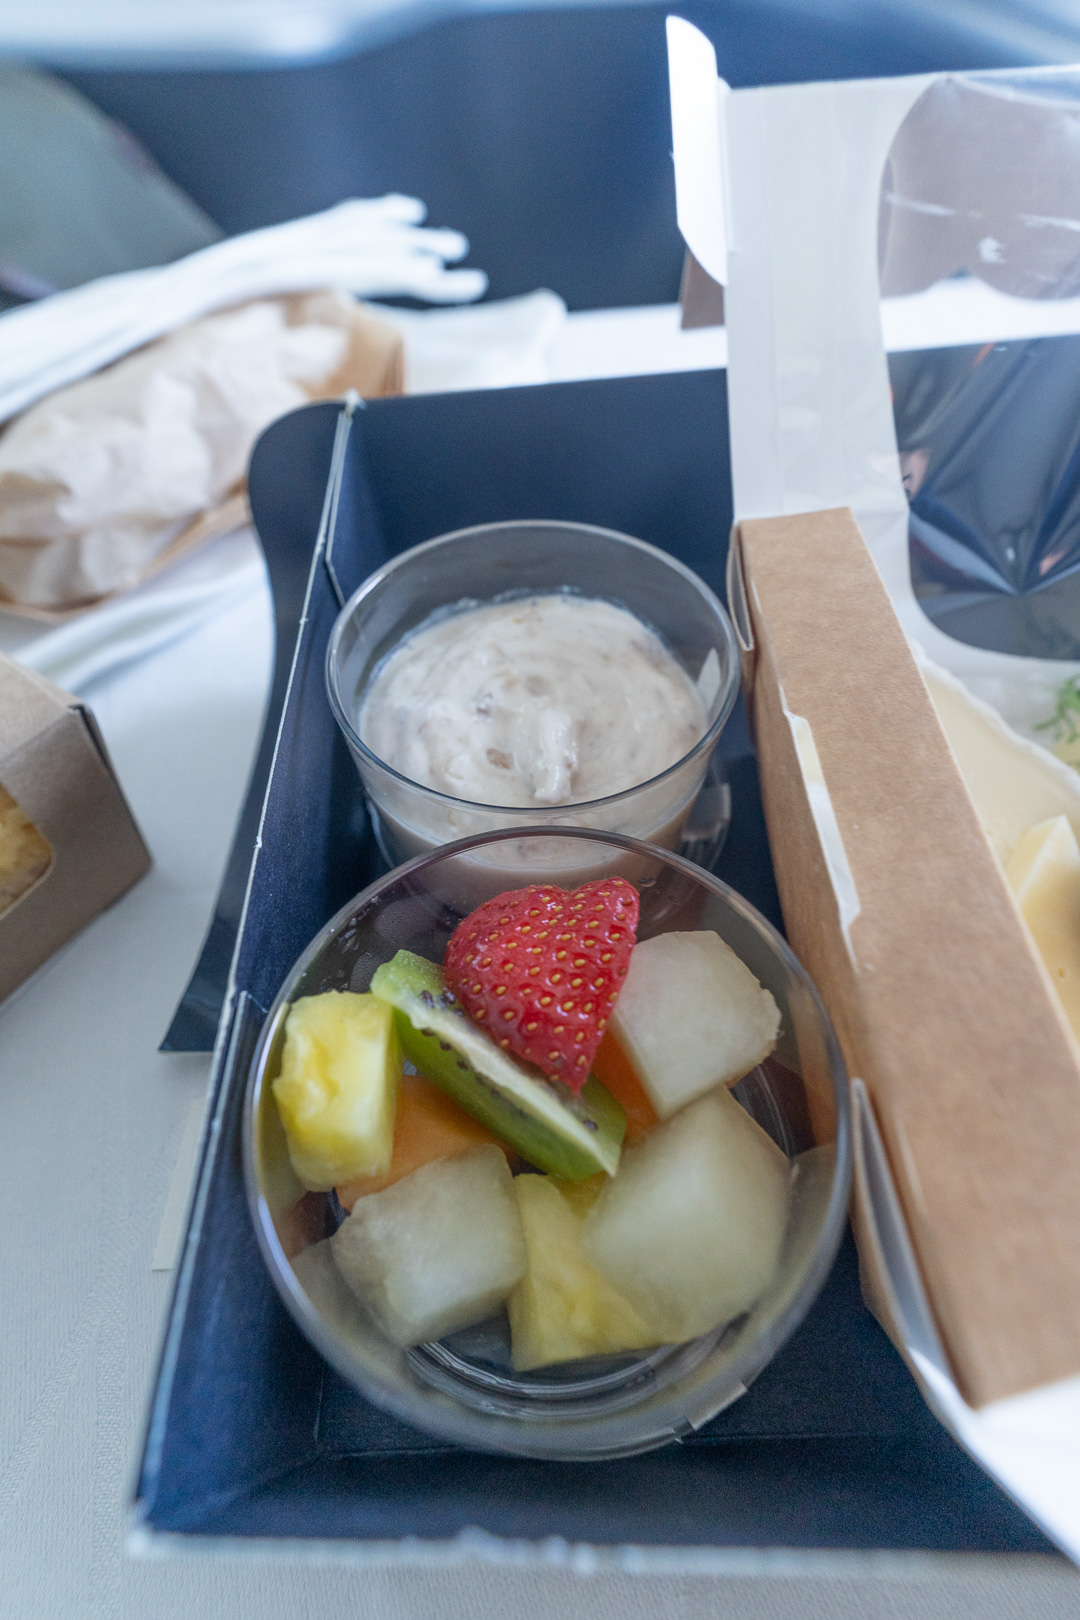 BA 77WN F 56 - REVIEW - British Airways : First Class Suites - B777 - London (LHR) to Malé (MLE) - [COVID-era]